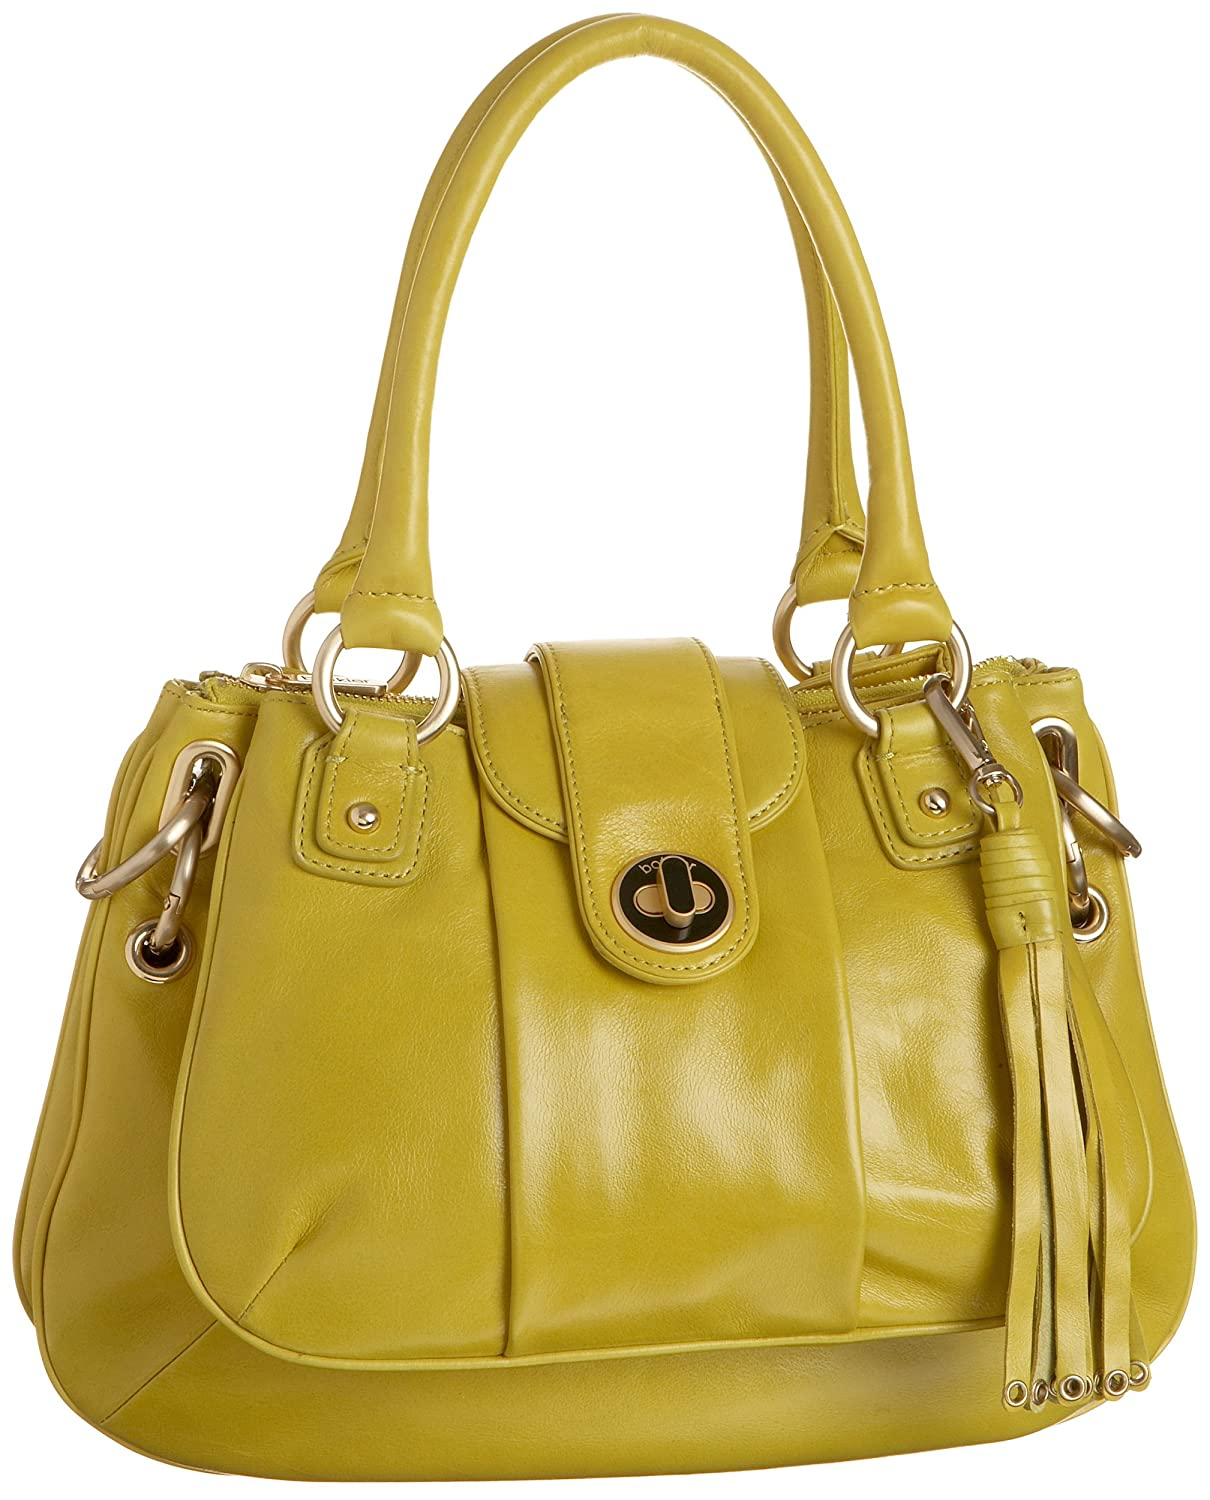 botkier Margot Satchel - Free Overnight Shipping & Return Shipping: Endless.com from endless.com